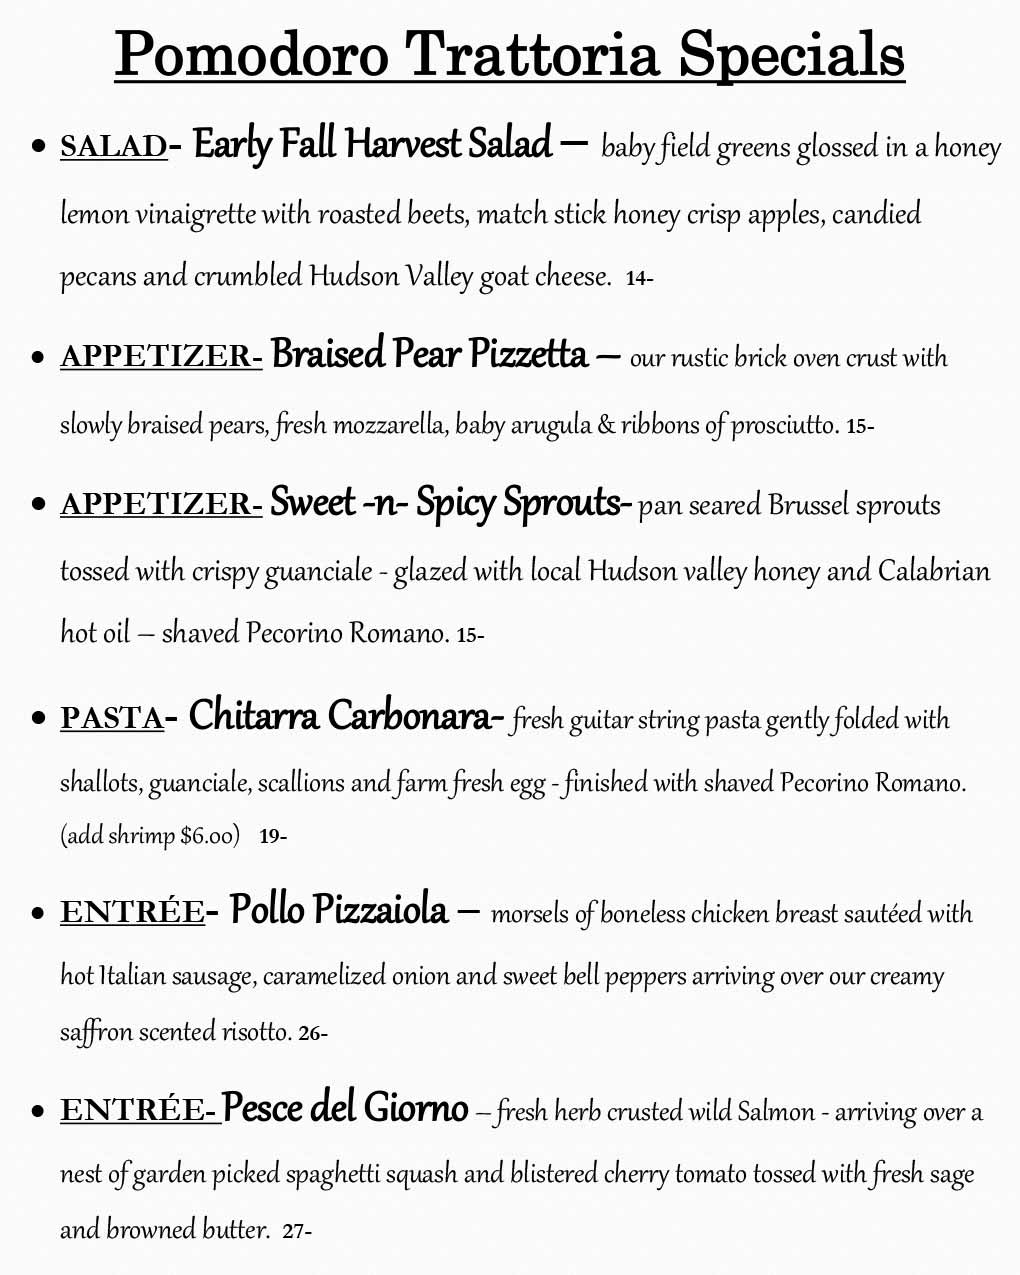 Pomodoro Riverside Weekly Specials from 09/21 - 09/27